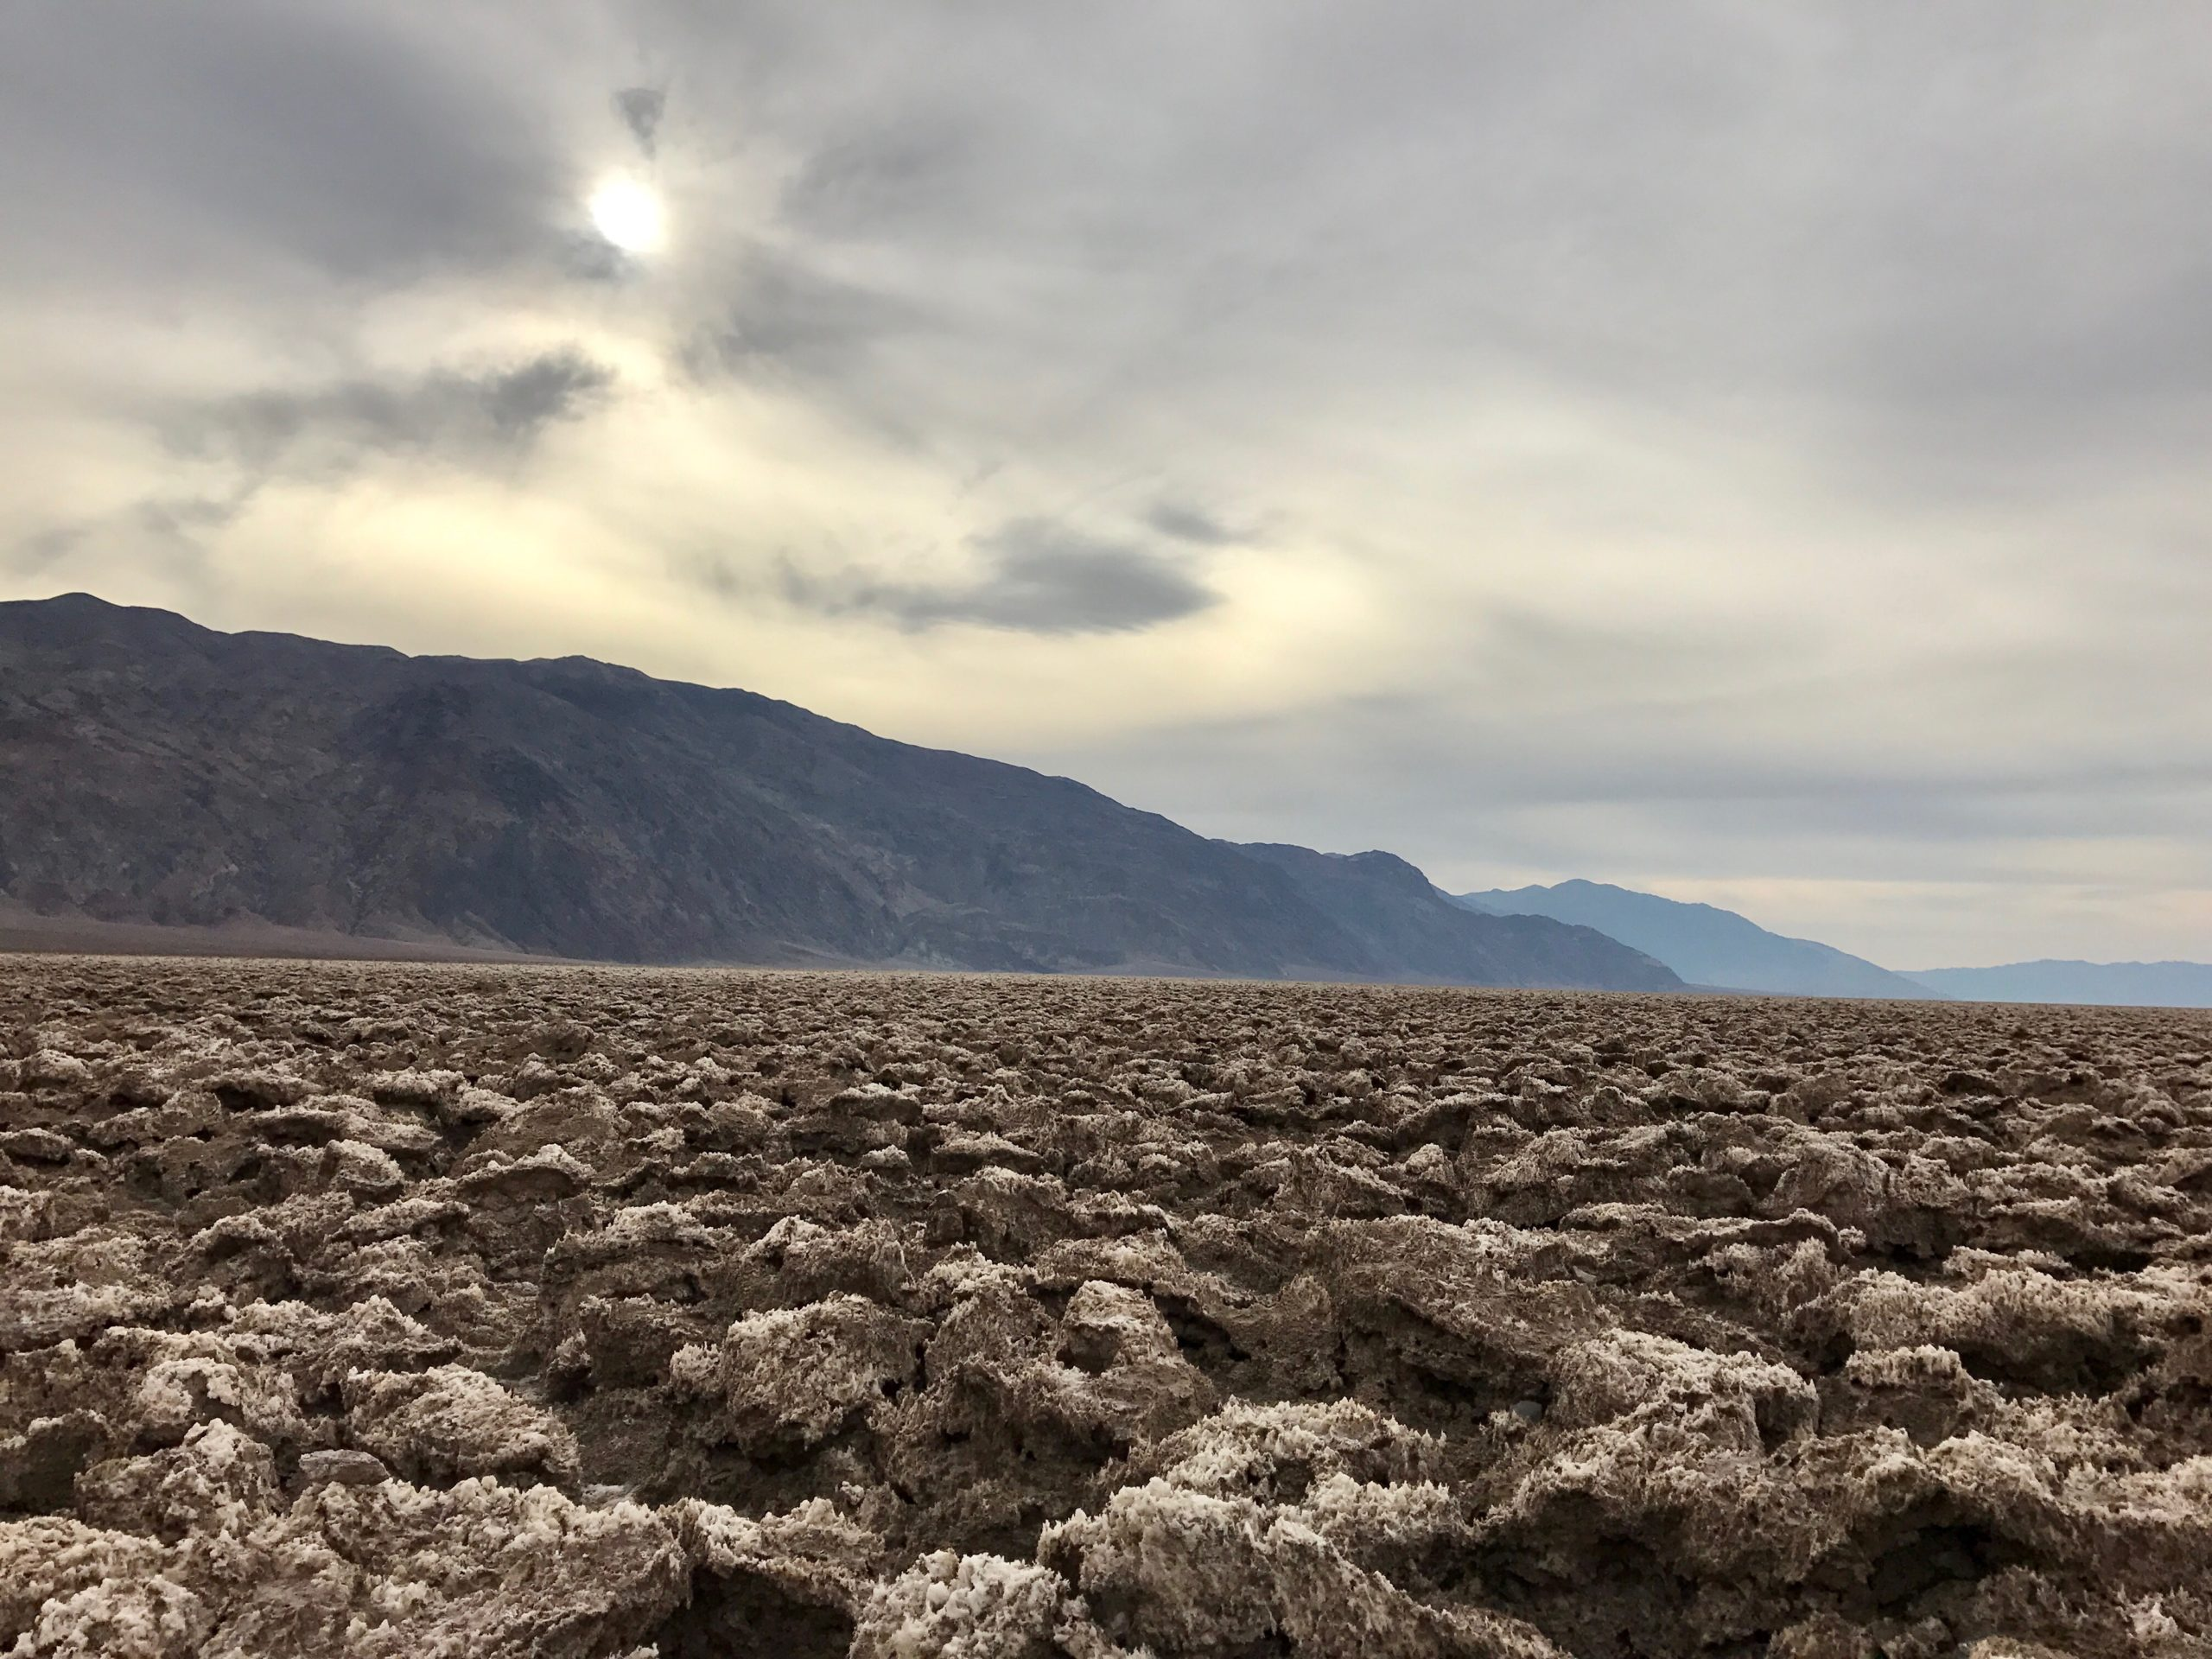 Death Valley desert on cloudy day